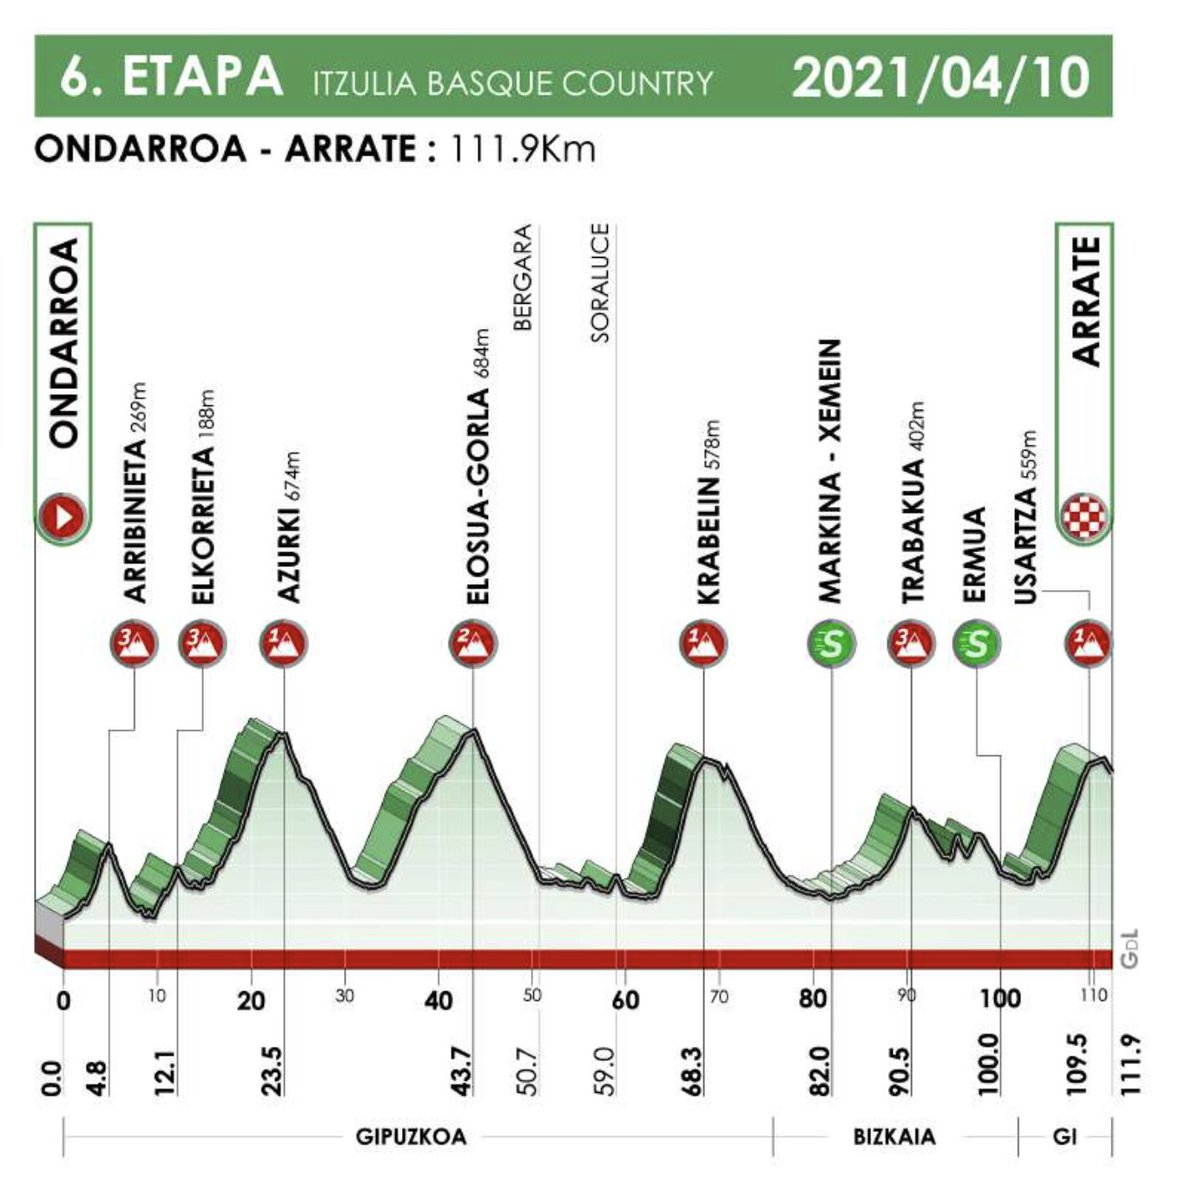 The profile of stage 6 of the Itzulia Basque Country